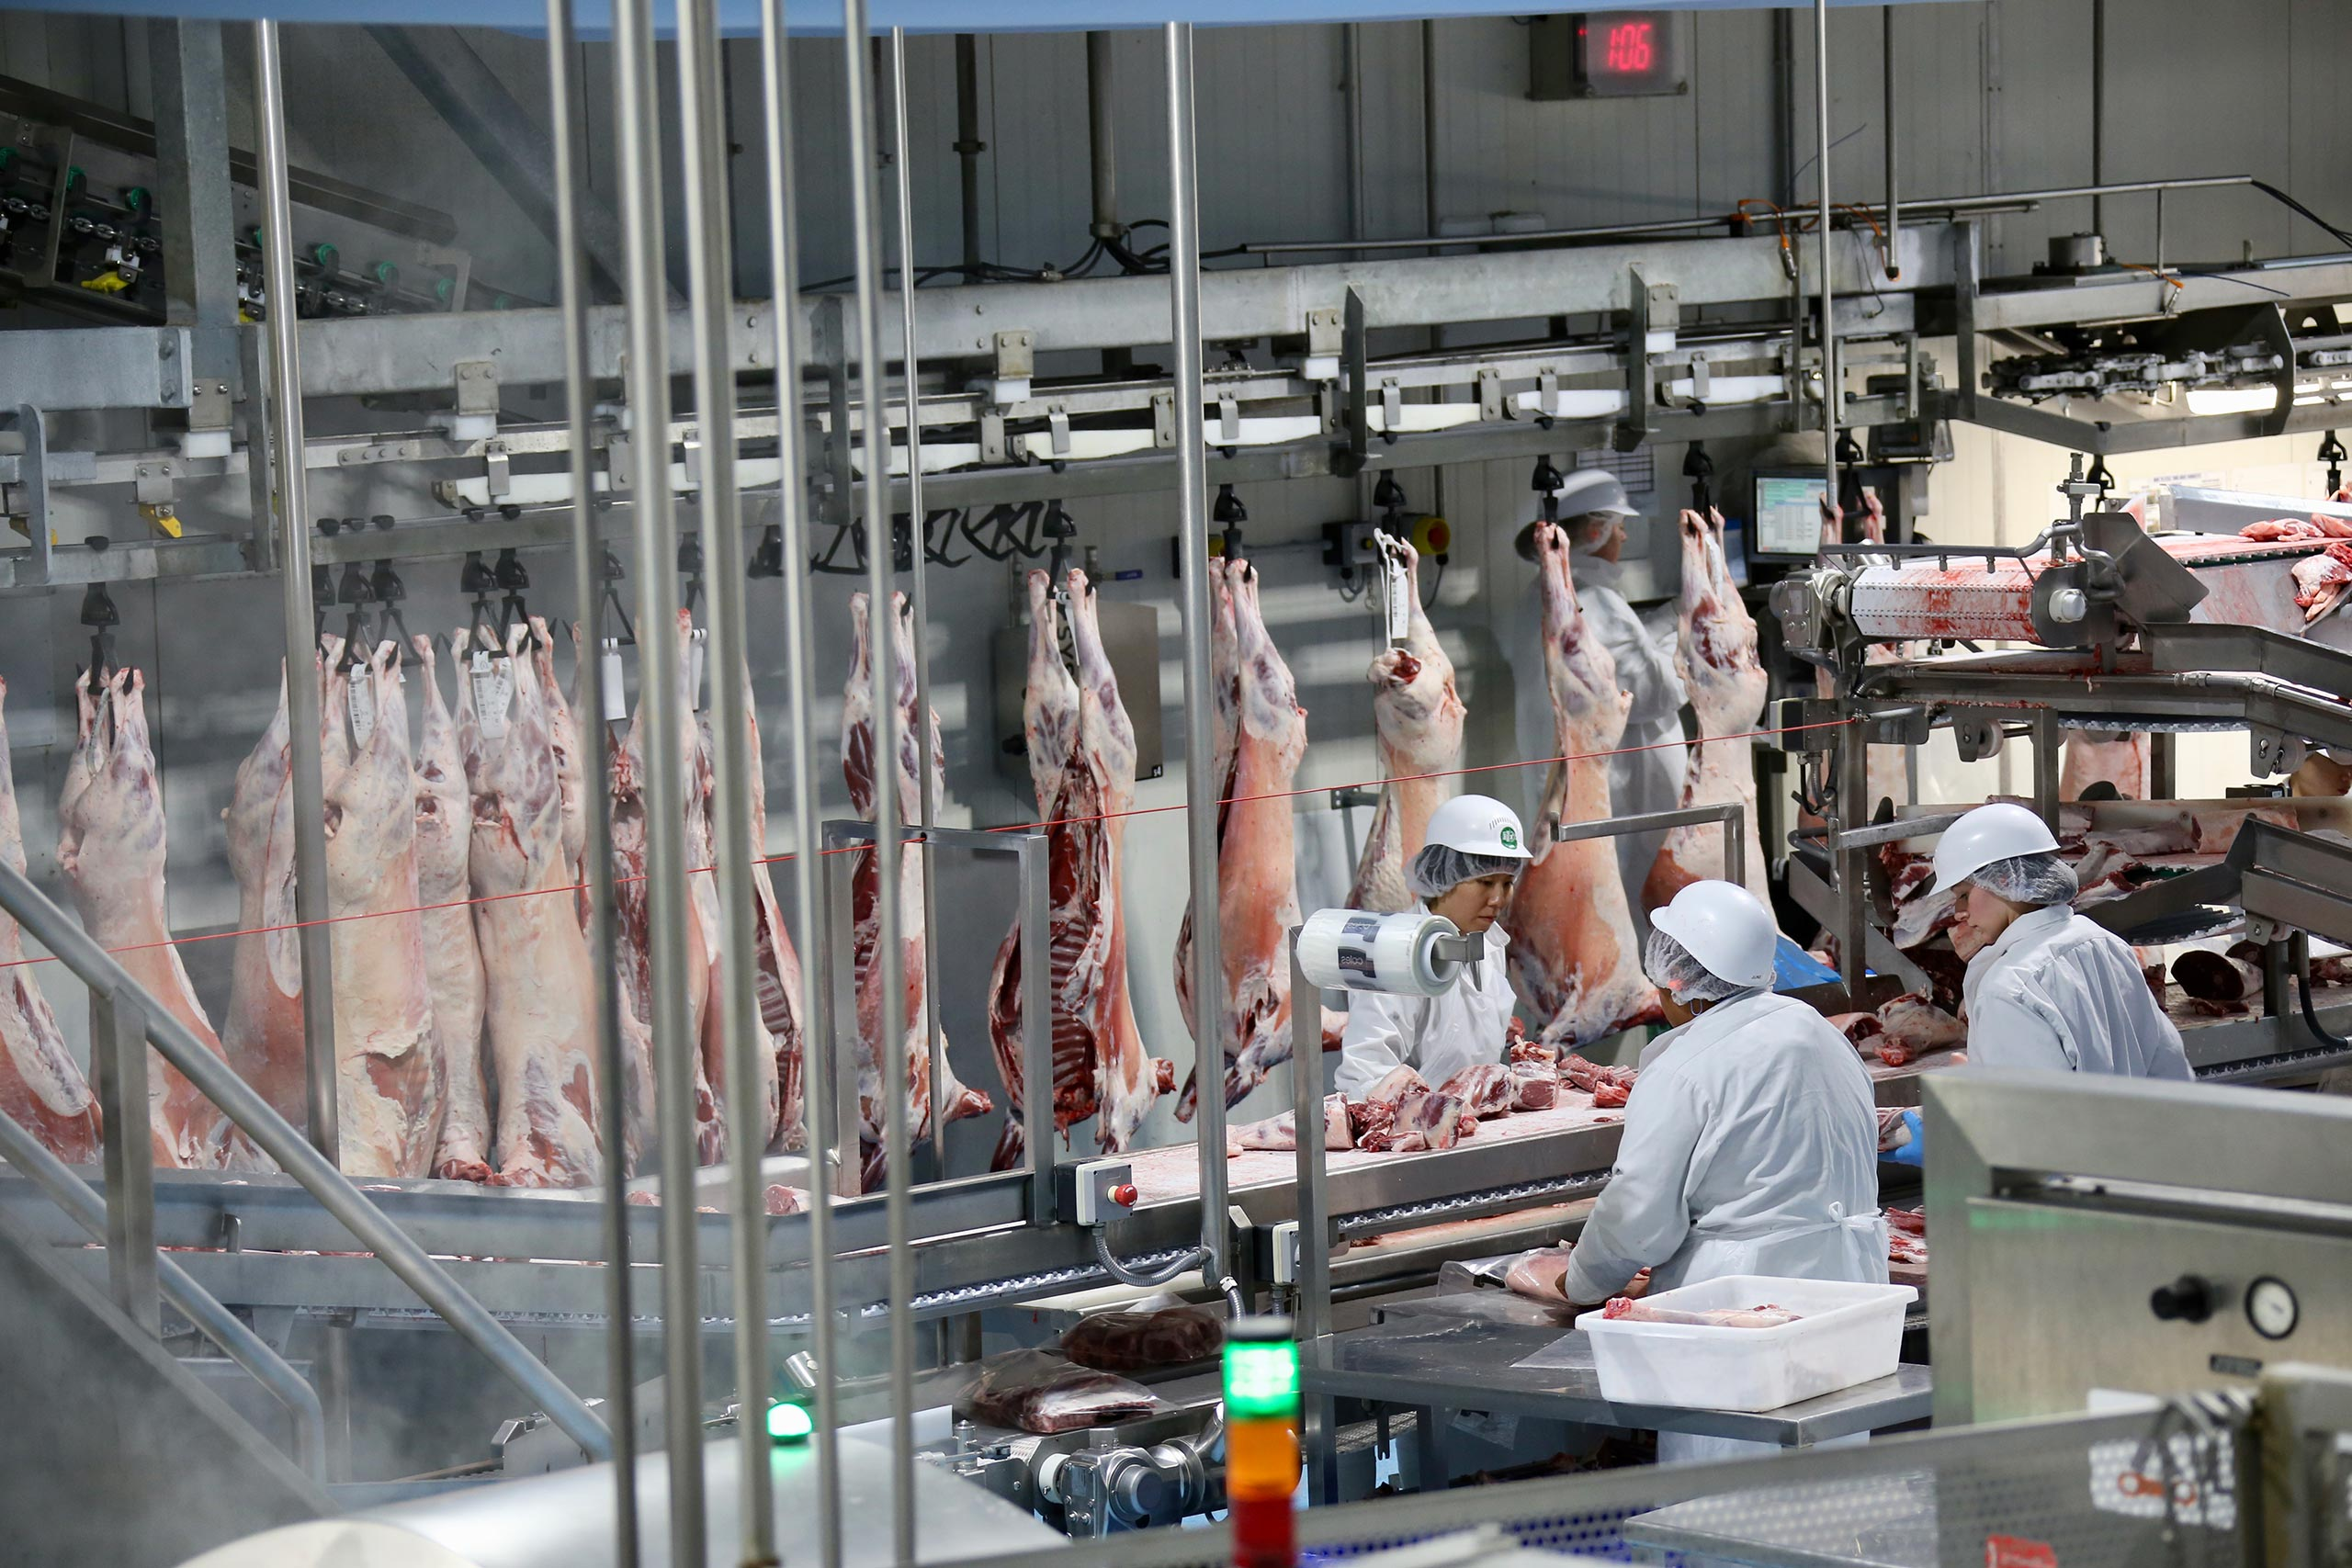 Red meat processing is big business